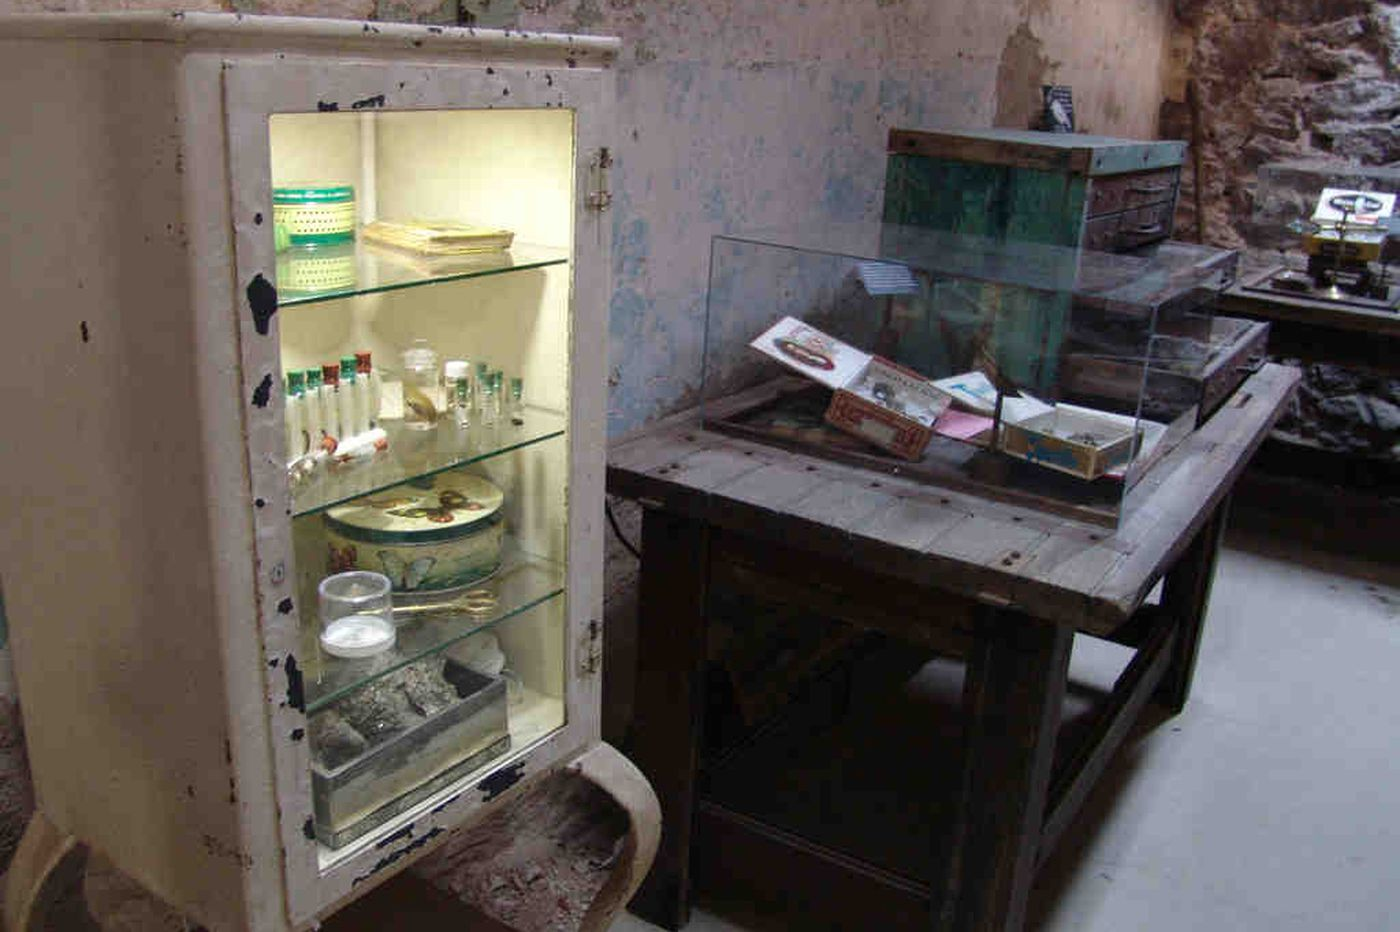 Galleries: Art in the cells of Eastern State Penitentiary